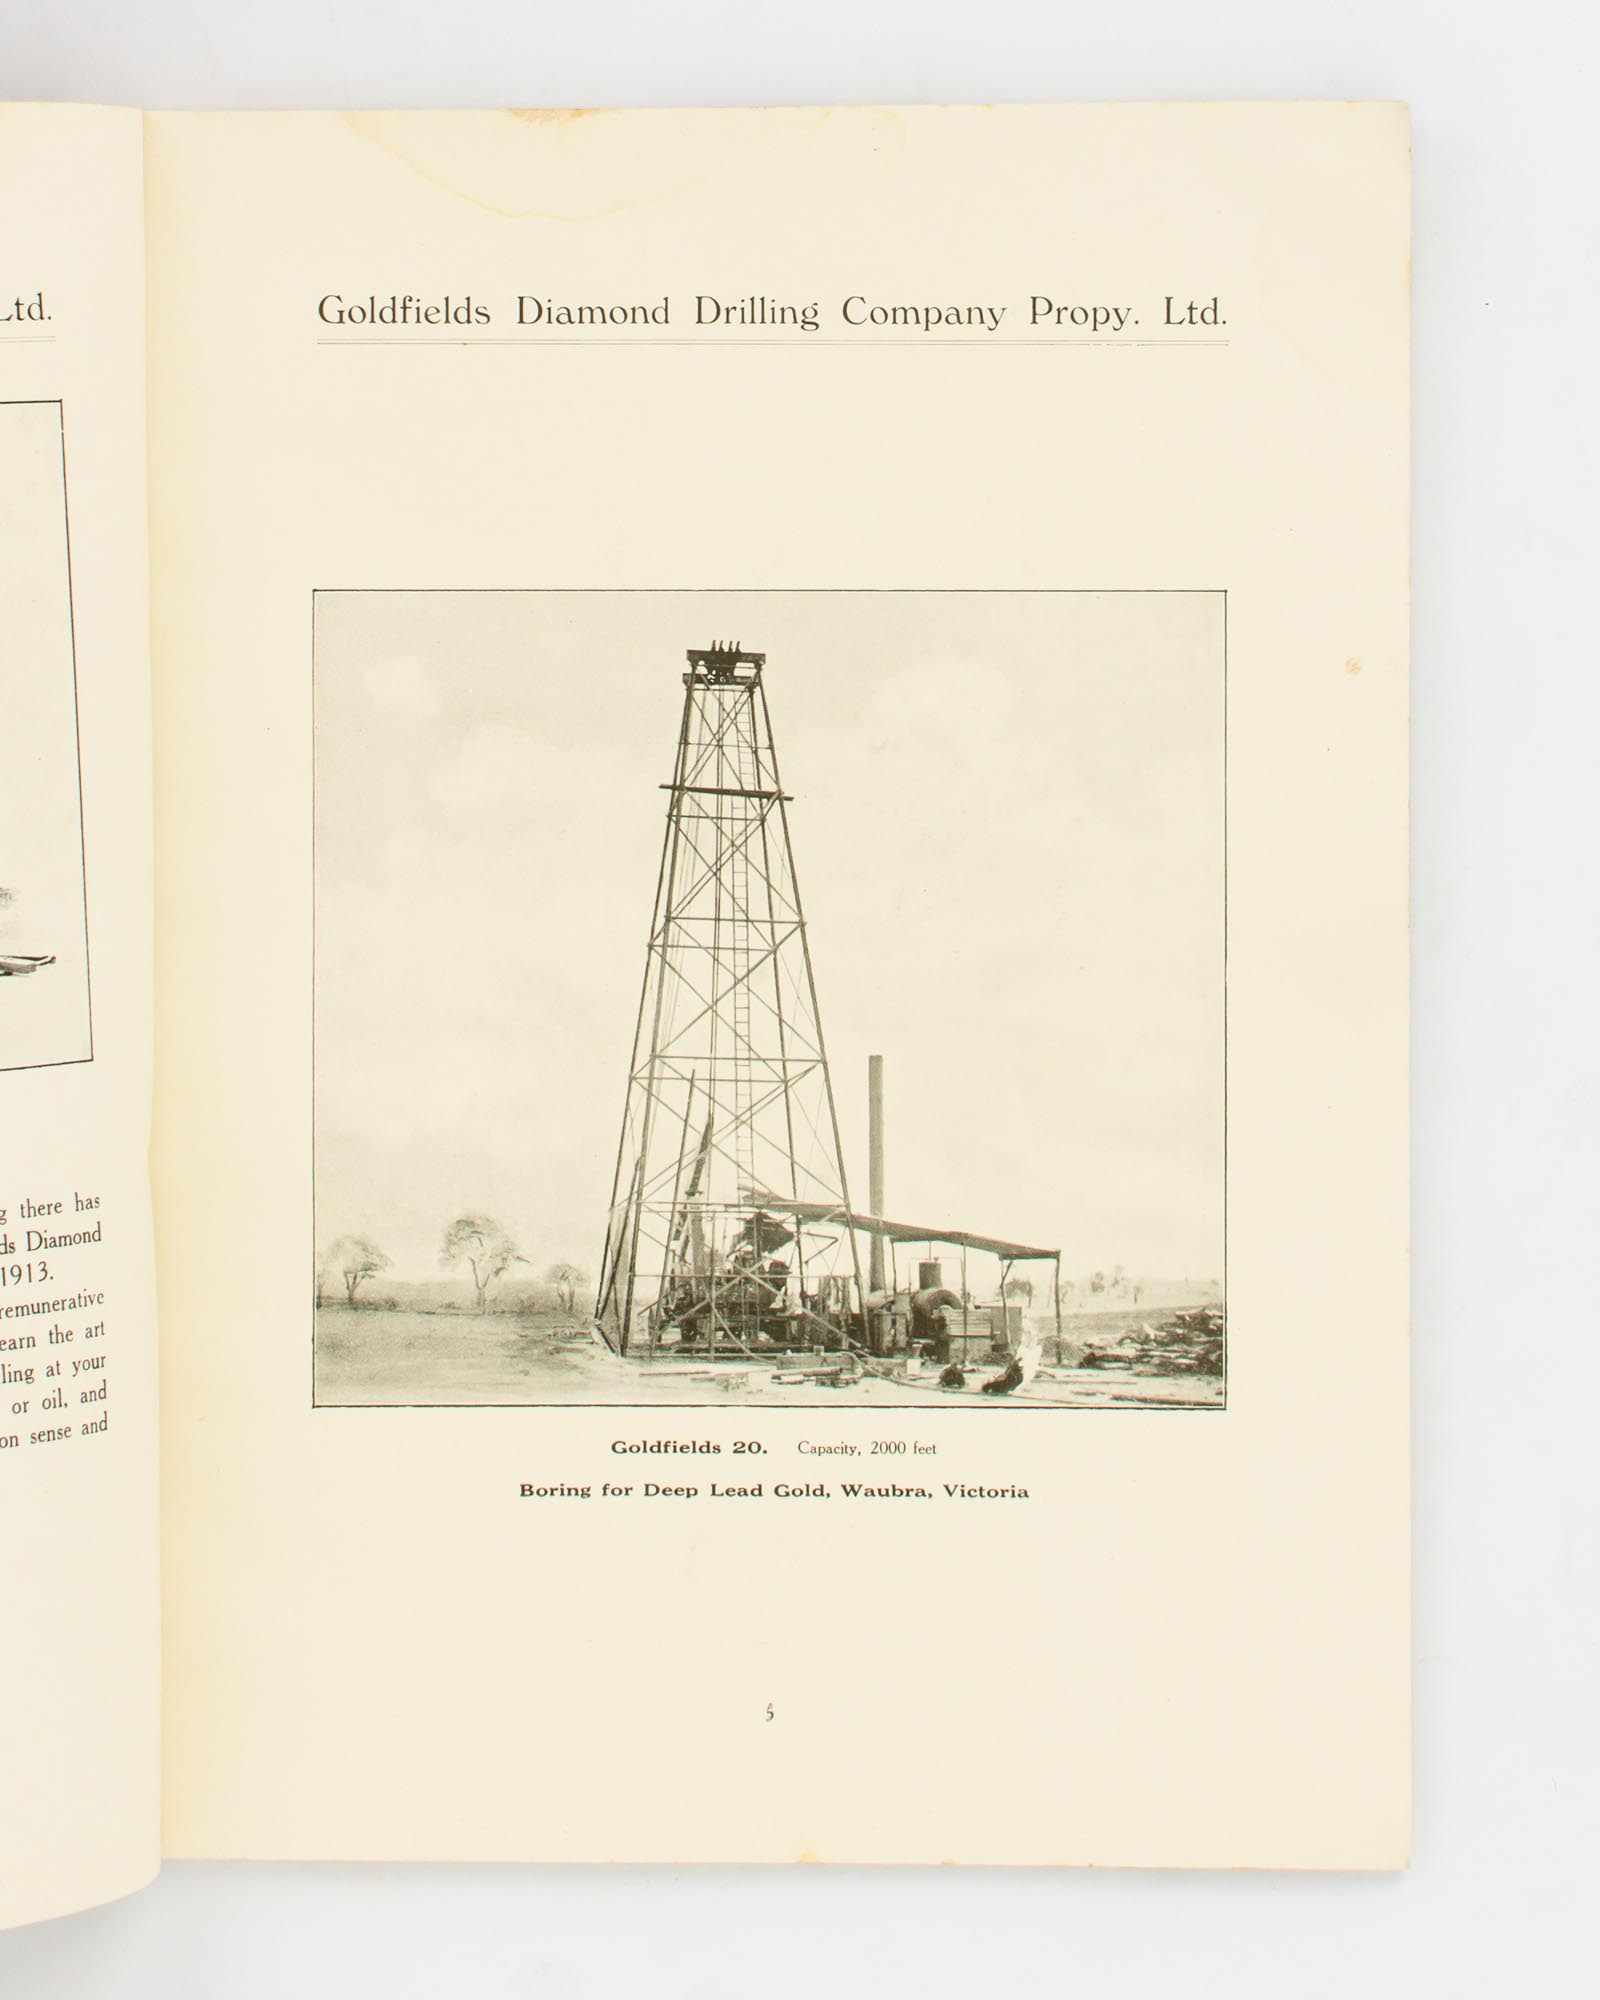 water and oil drilling machines and methods trade